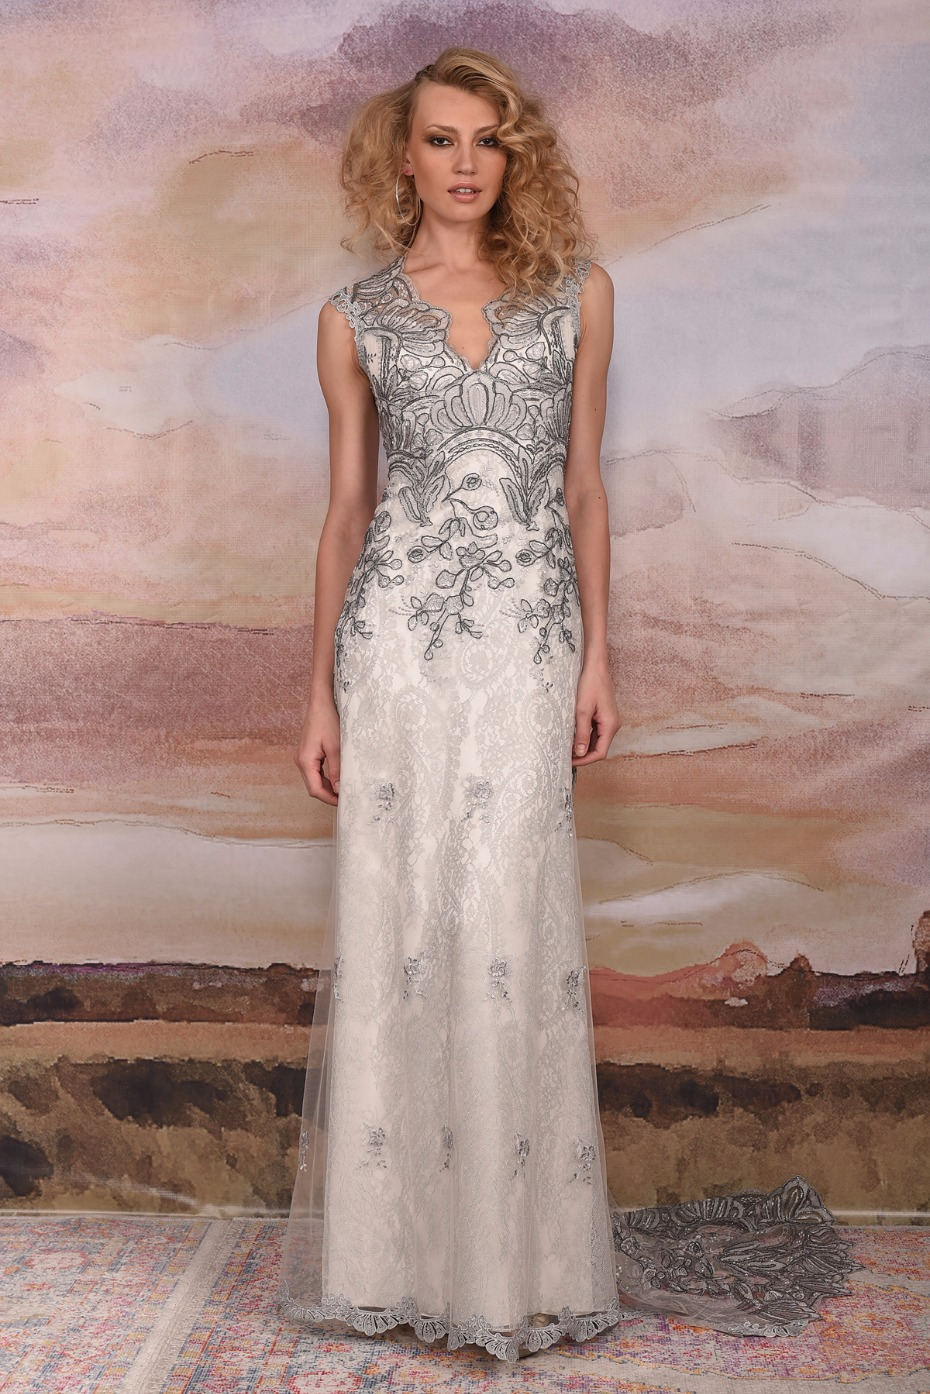 Claire Pettibone Vagabond Collection 2018 Horizon